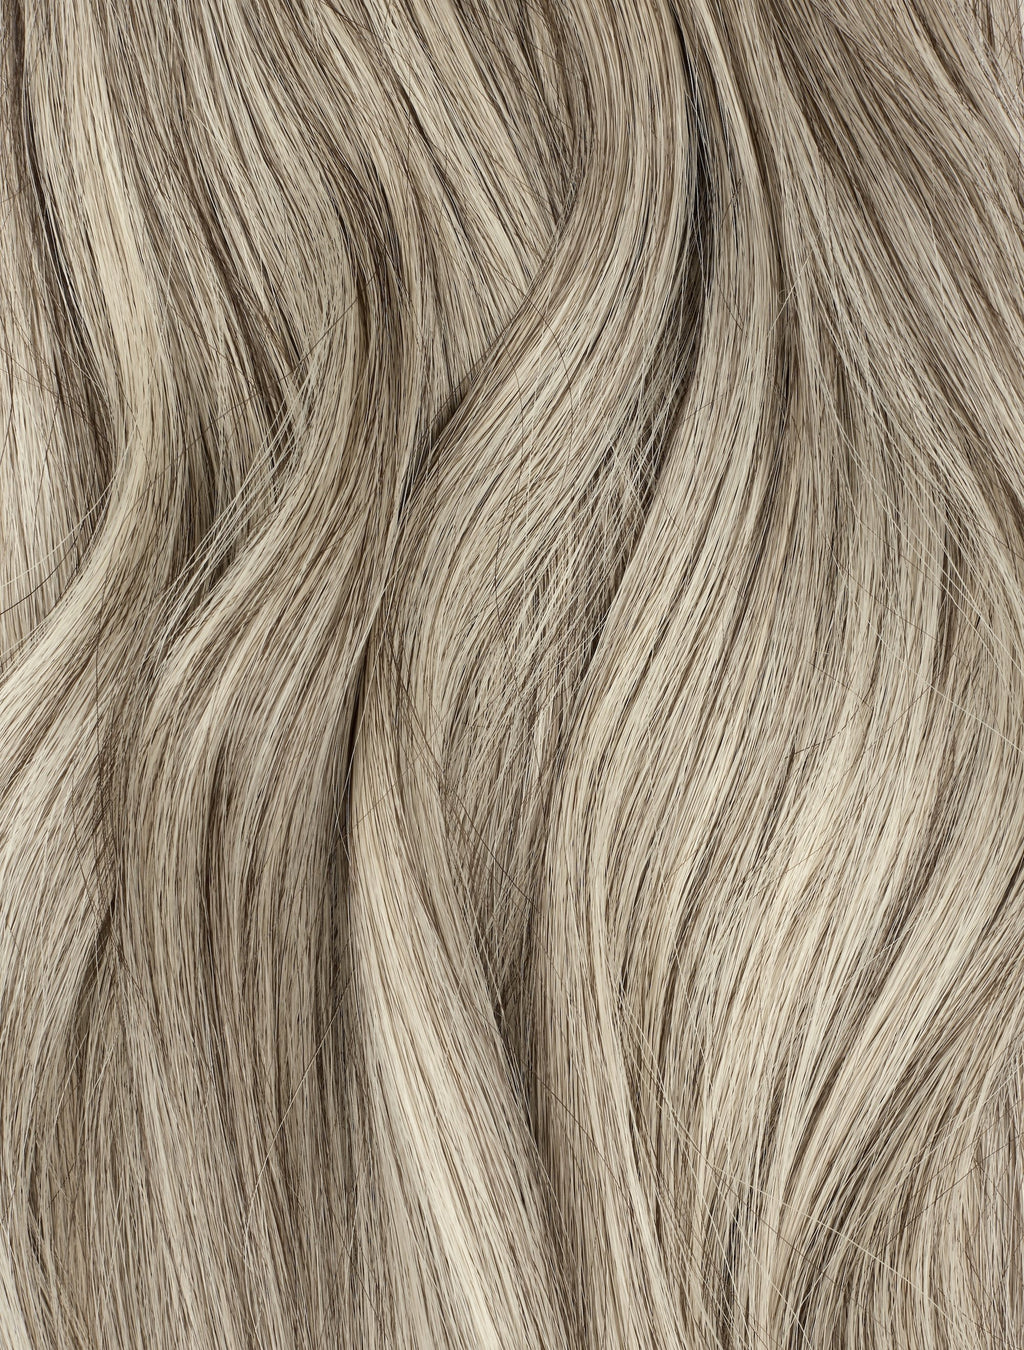 "Highlight - (Dark Brown #2 / White Blonde #60B) - Weave 22"" 100g- ON BACKORDER (Ships Aug 10) - BOMBAY HAIR  - Weaving Weft"